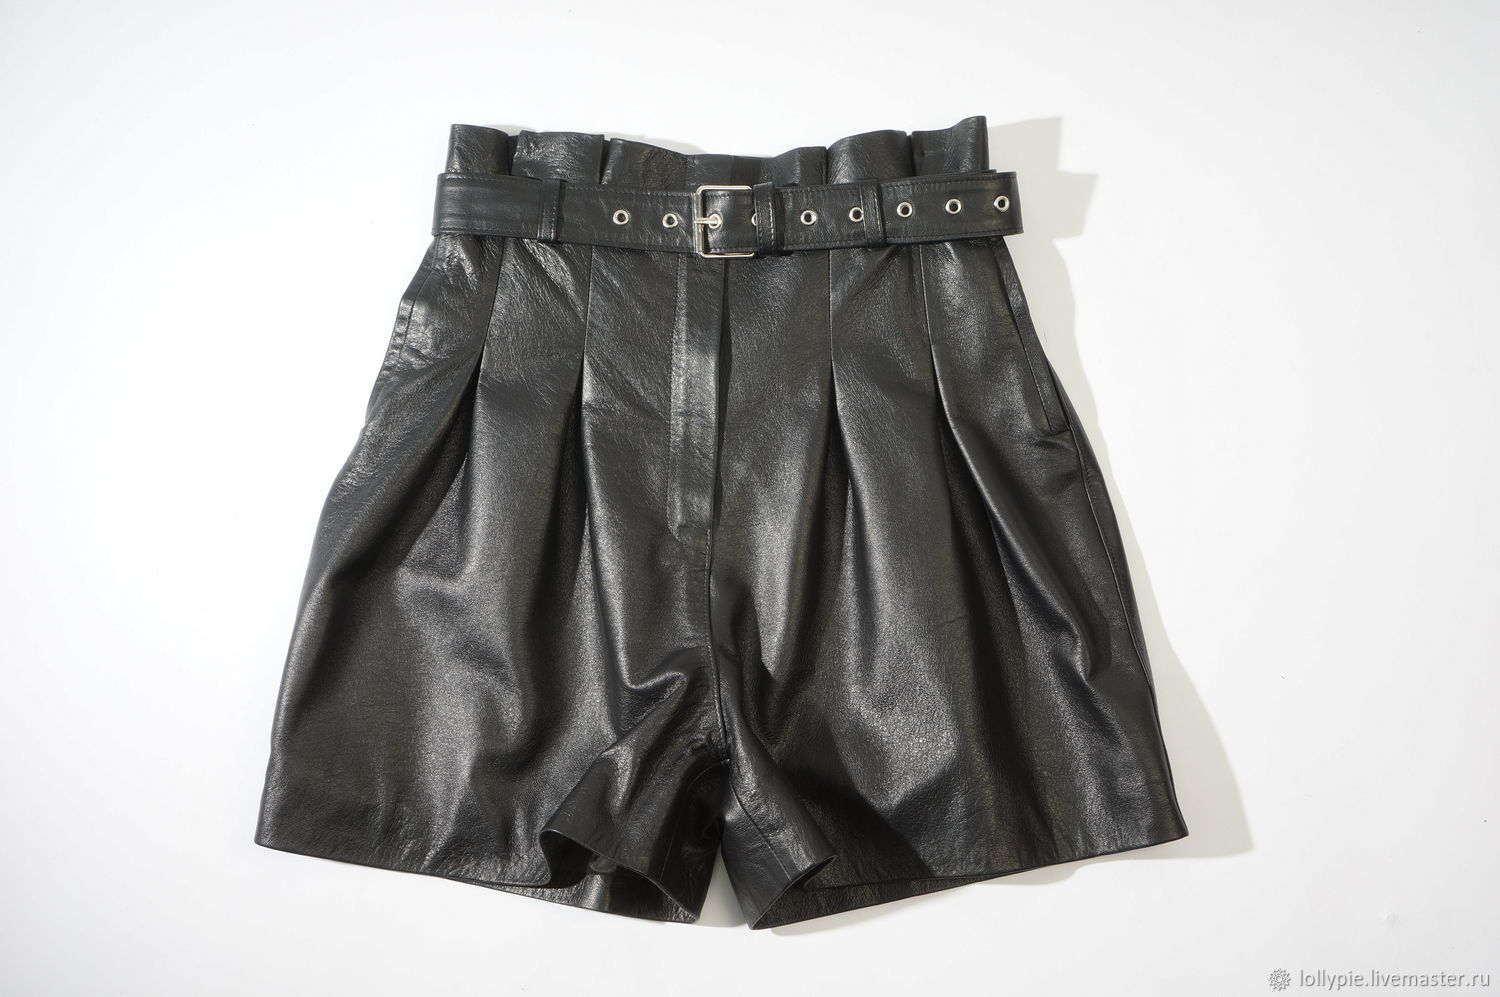 The shorts are genuine leather, Shorts, Moscow,  Фото №1